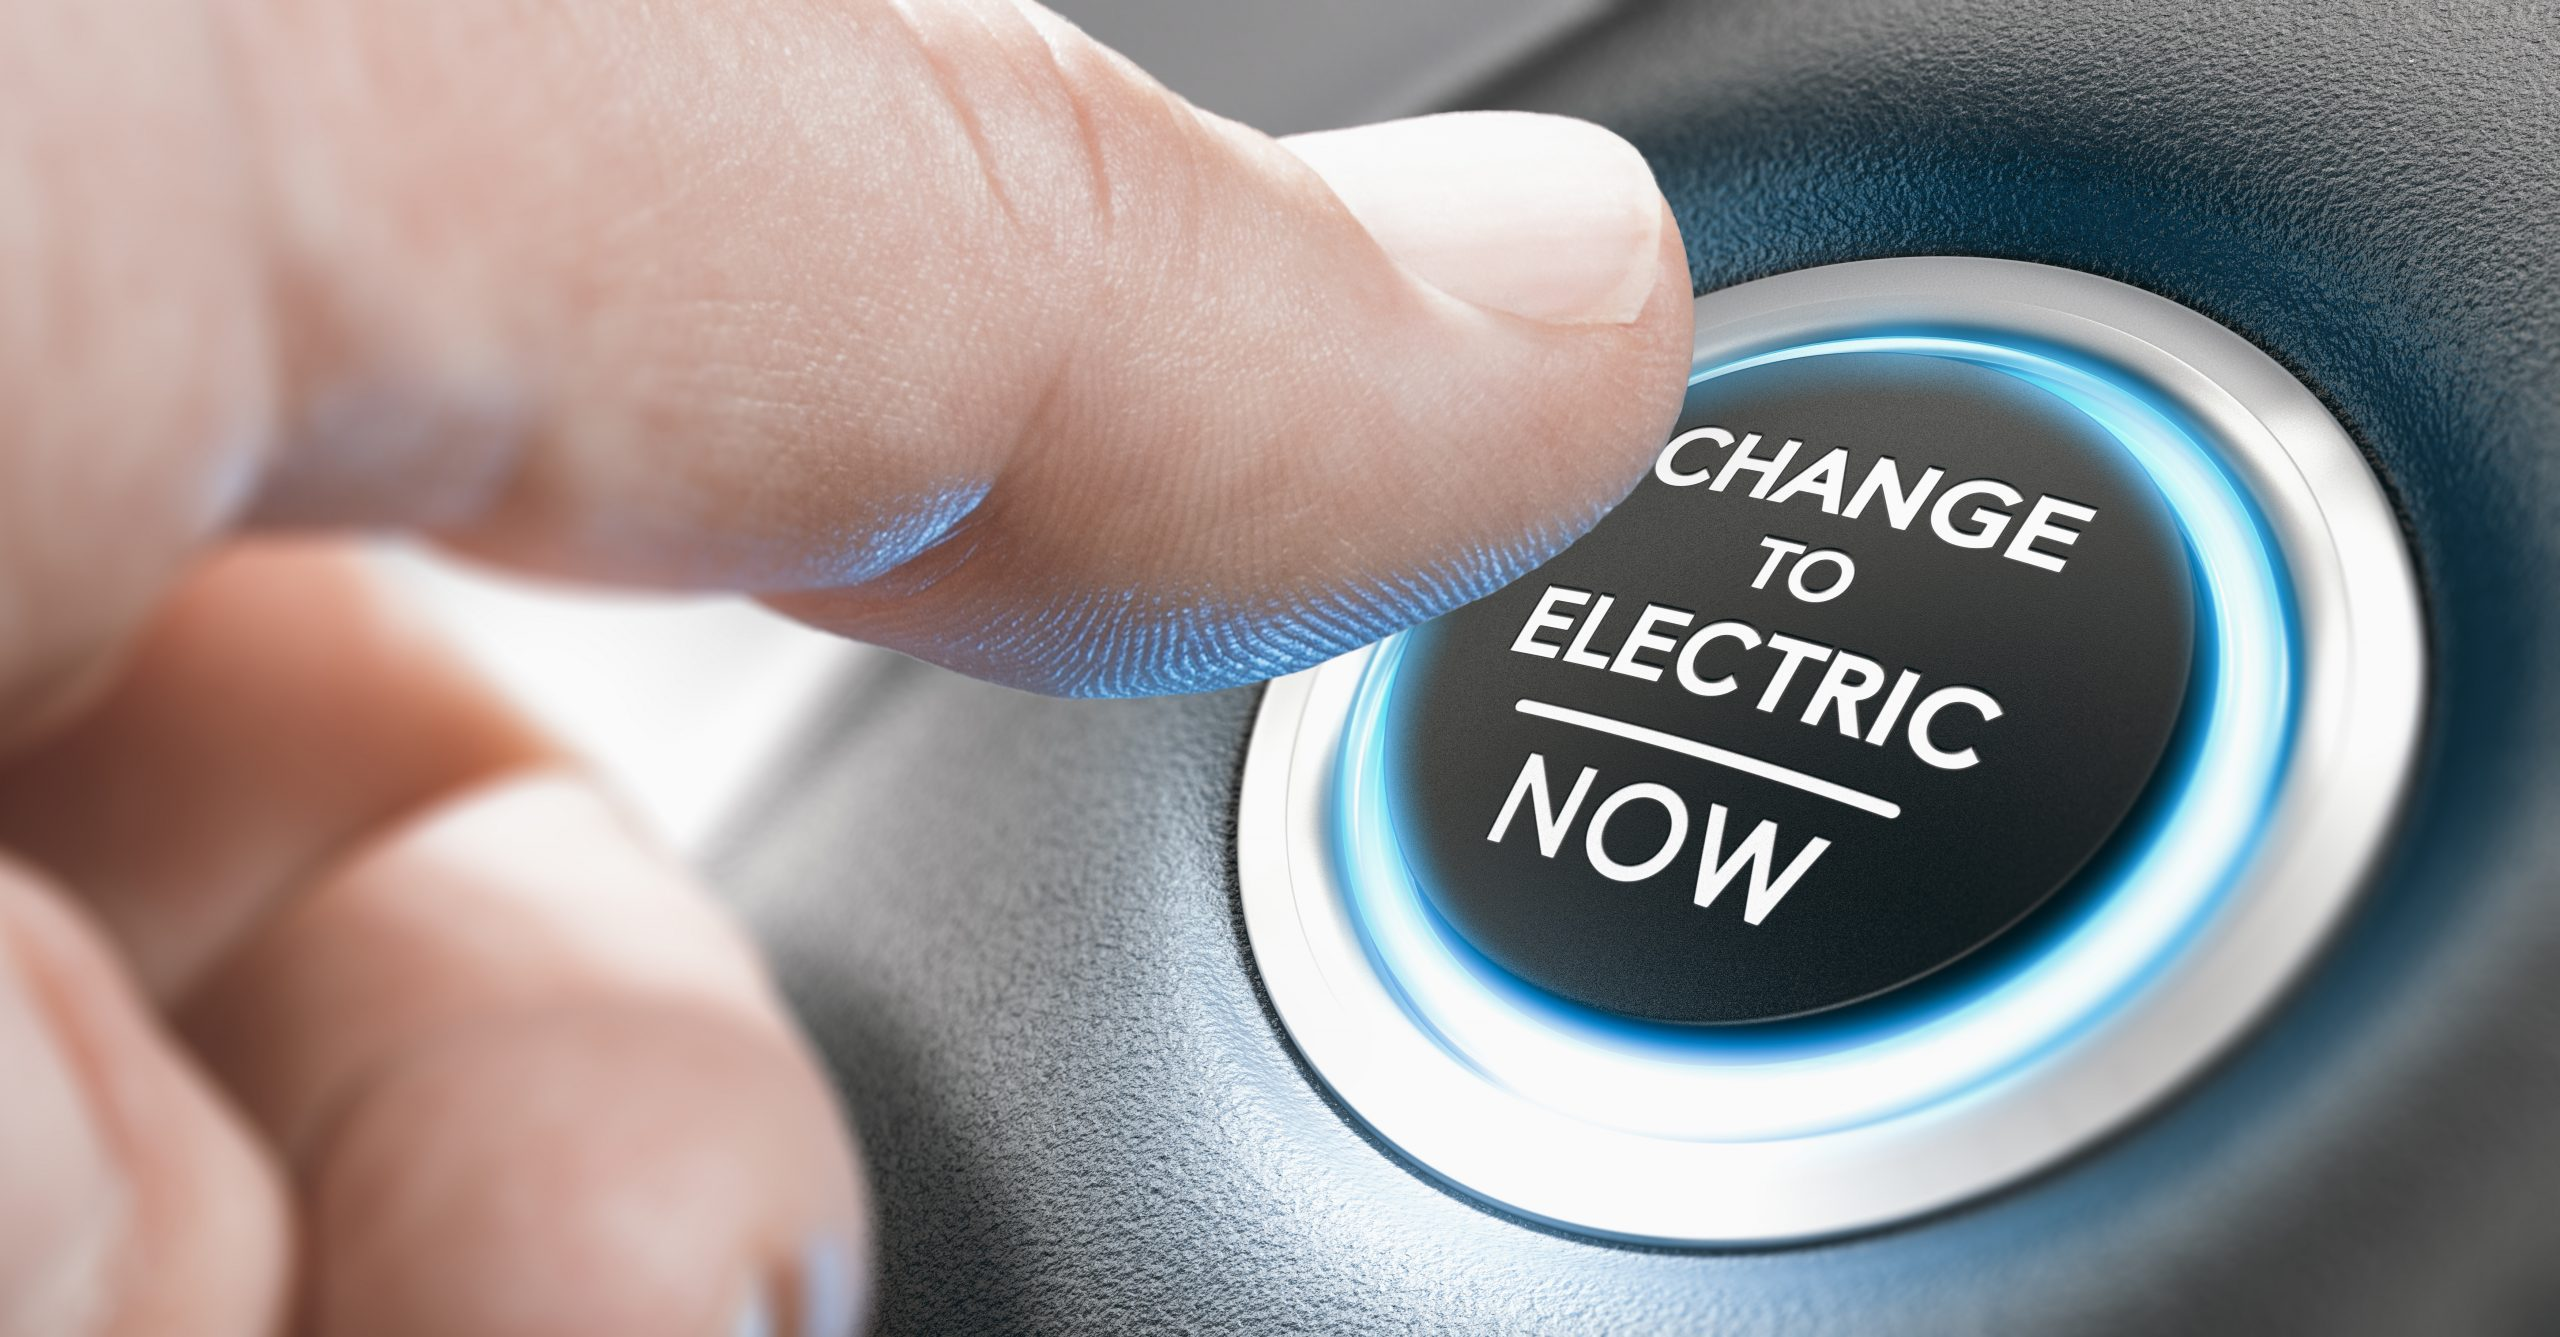 Change to Electric Now